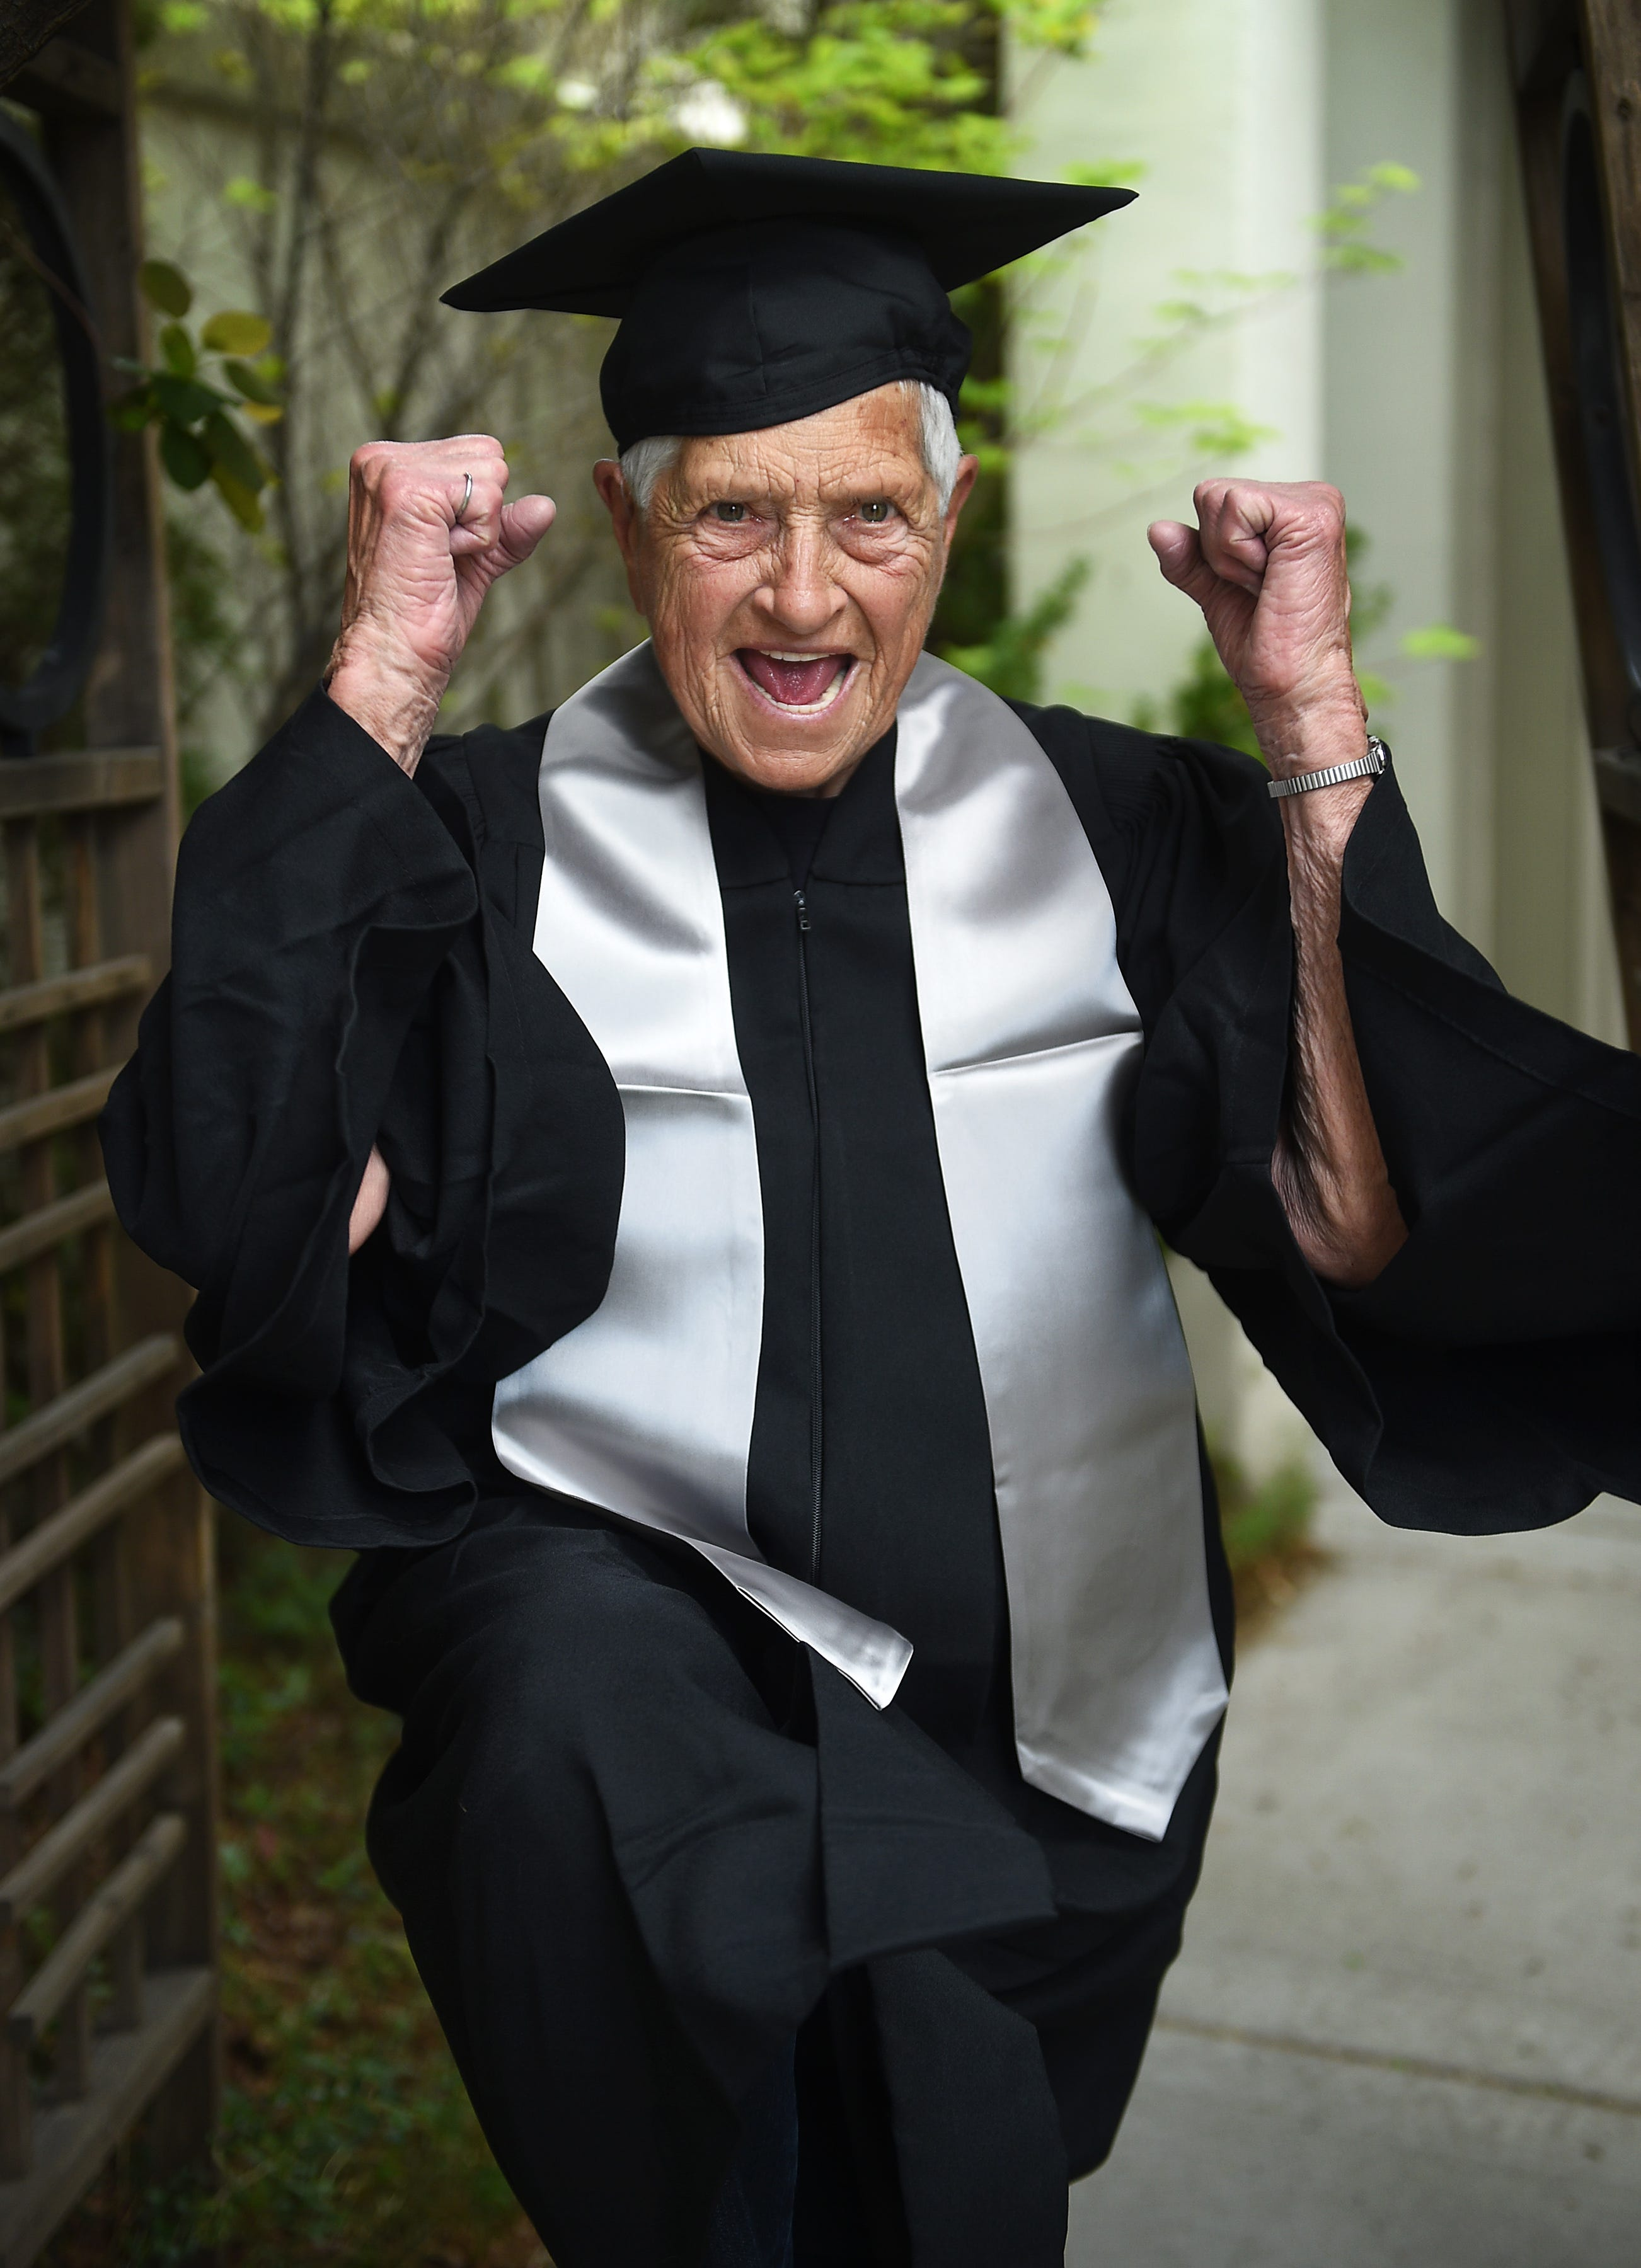 cfce774cad2 UNR graduation  90-year-old to walk 45 years after earning degree